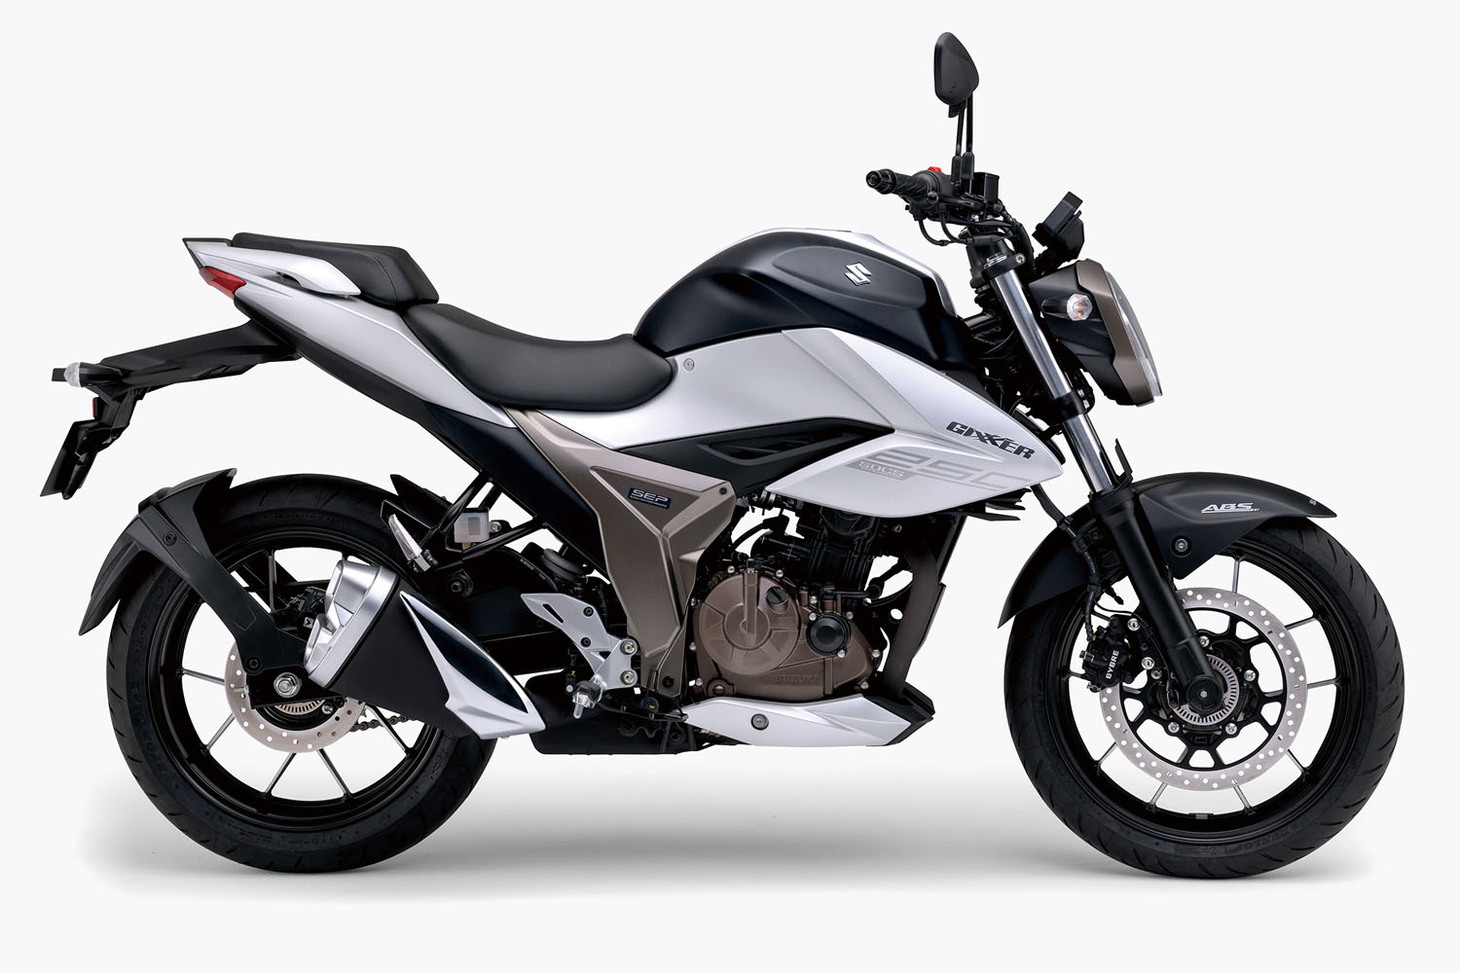 2019 Suzuki Gixxer 250 (Naked) Launched In India, Priced